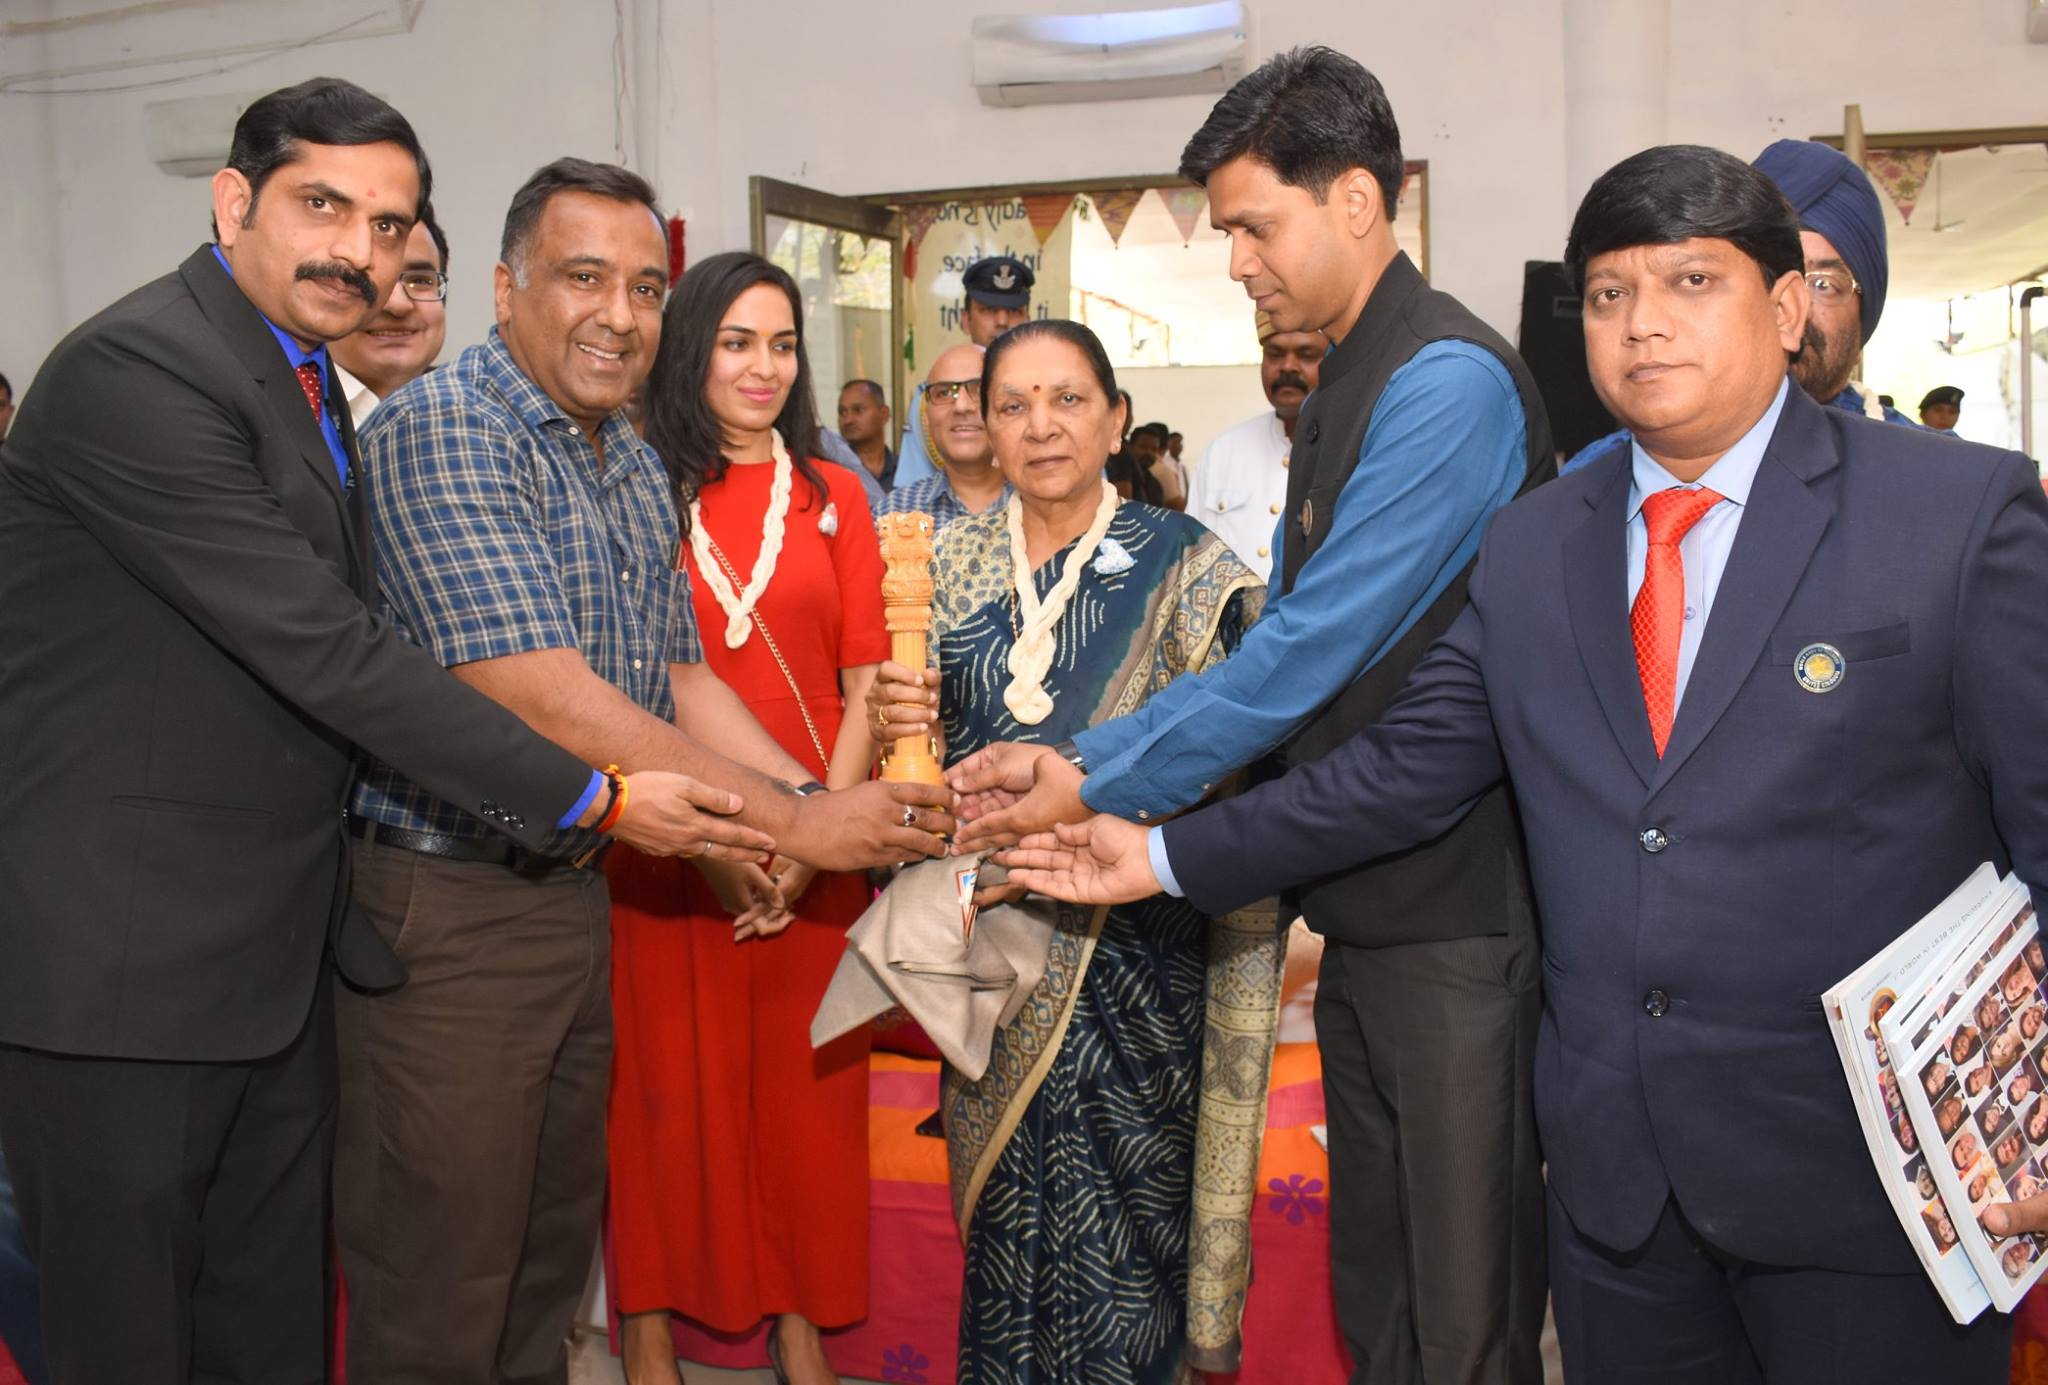 Hon'ble Governor of M P Anandiben Patel inaugurates Craftroots Exhibition at Yashwant Club in Indore